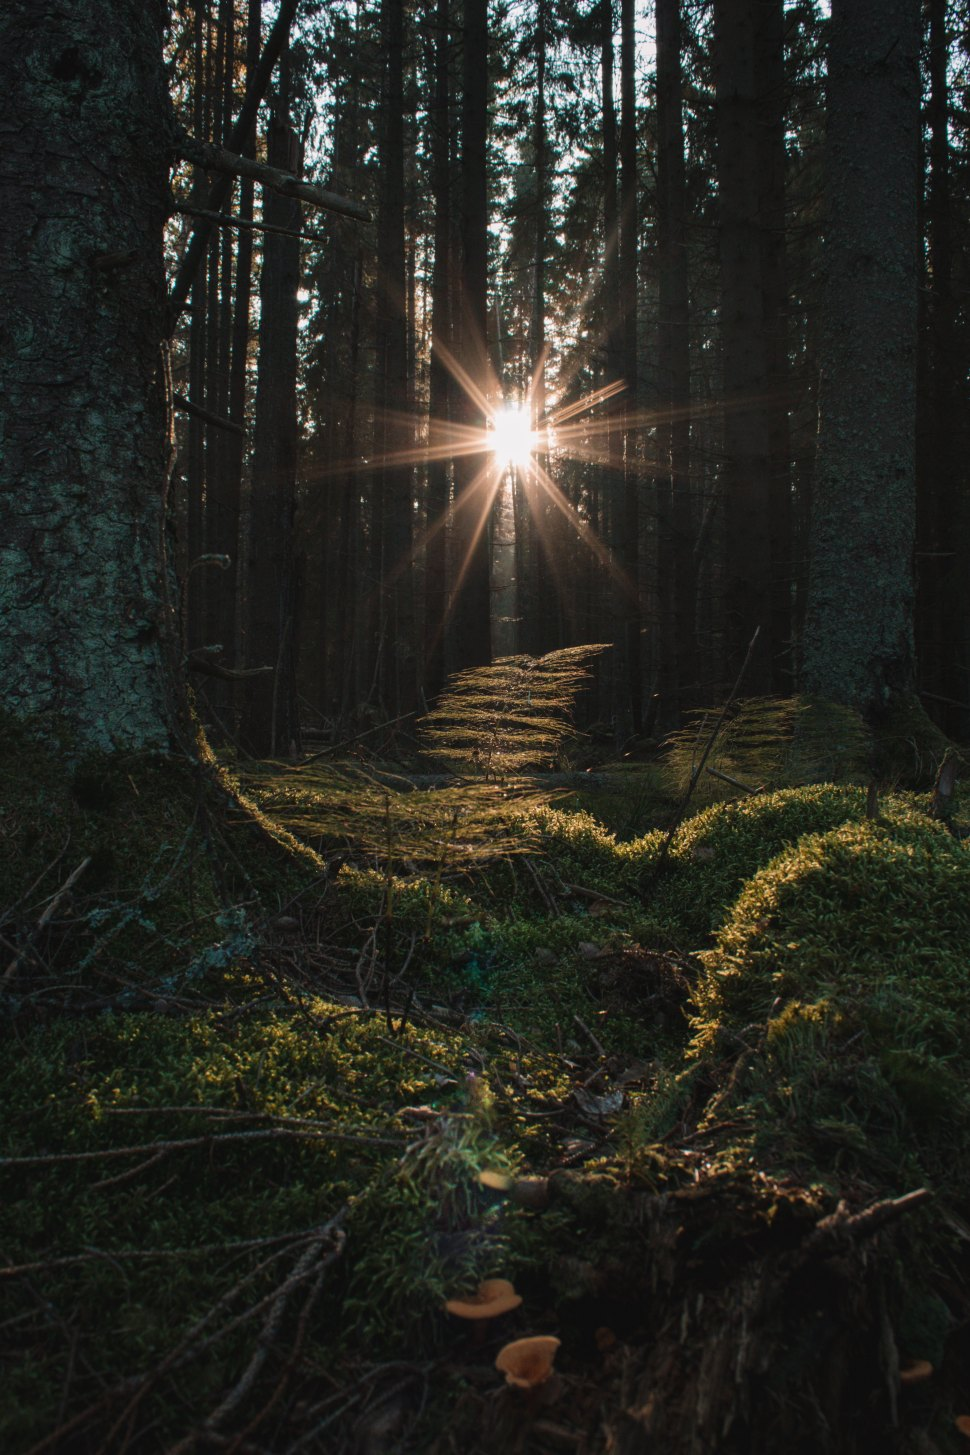 guillaume-briard-sunrise forrest -unsplash